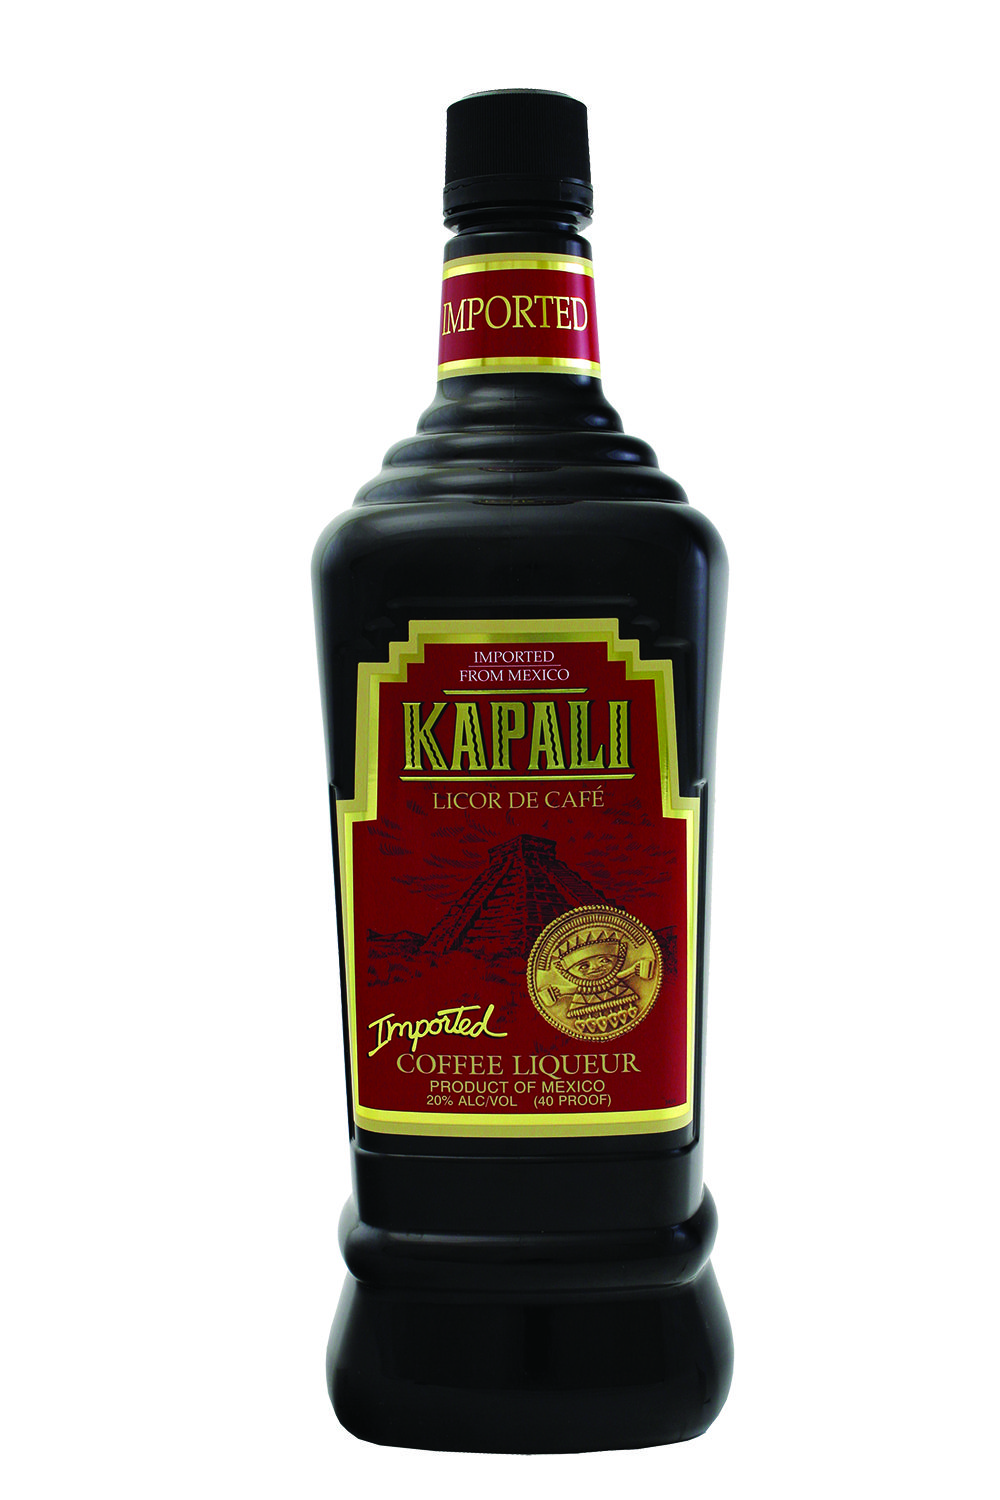 A liqueur from Mexico with a vanilla, coffee flavor. It's